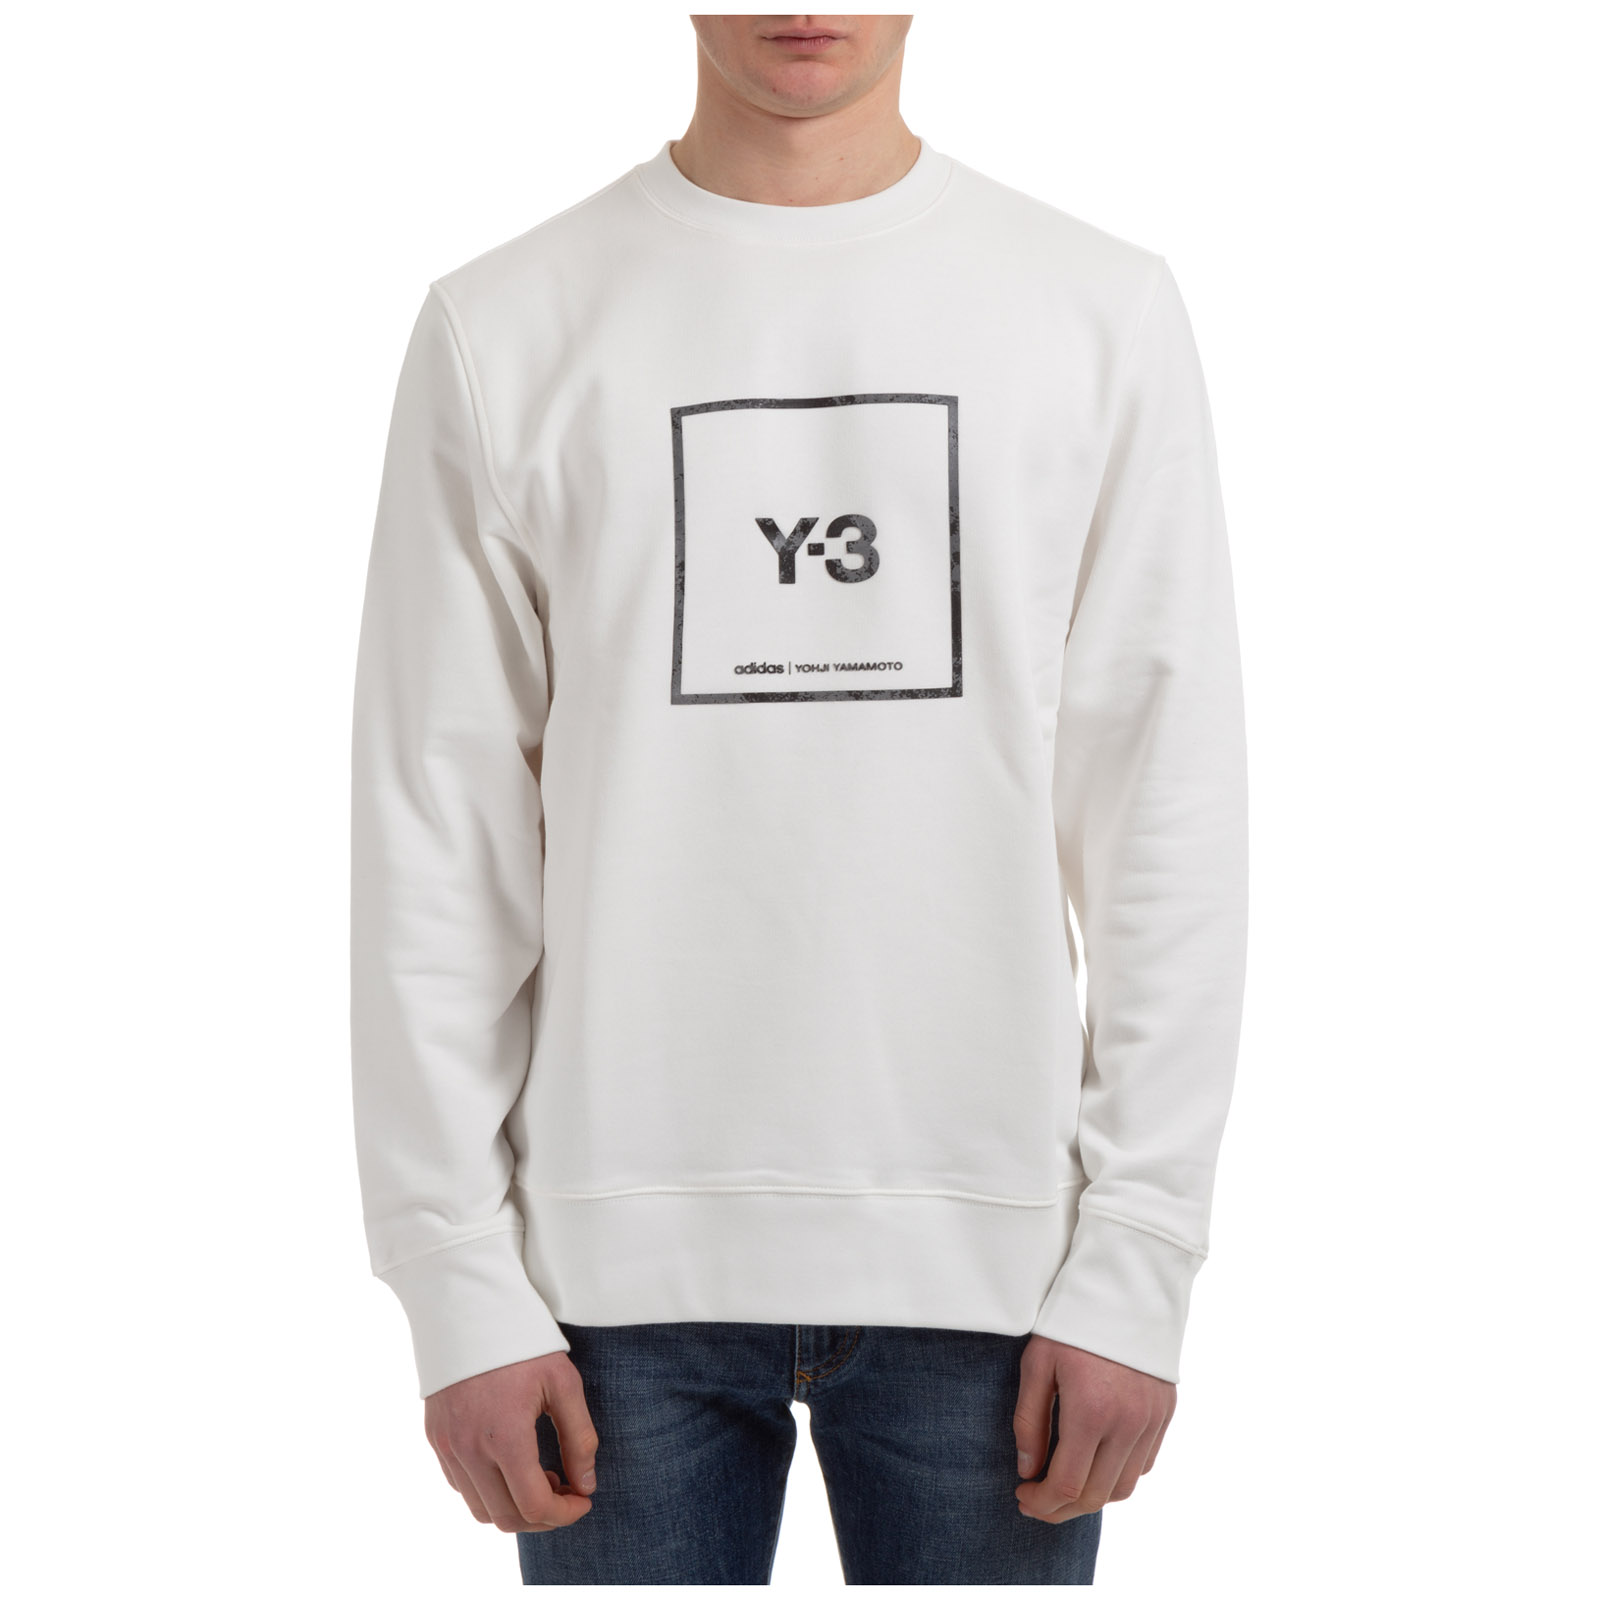 Y-3 MEN'S SWEATSHIRT SWEAT